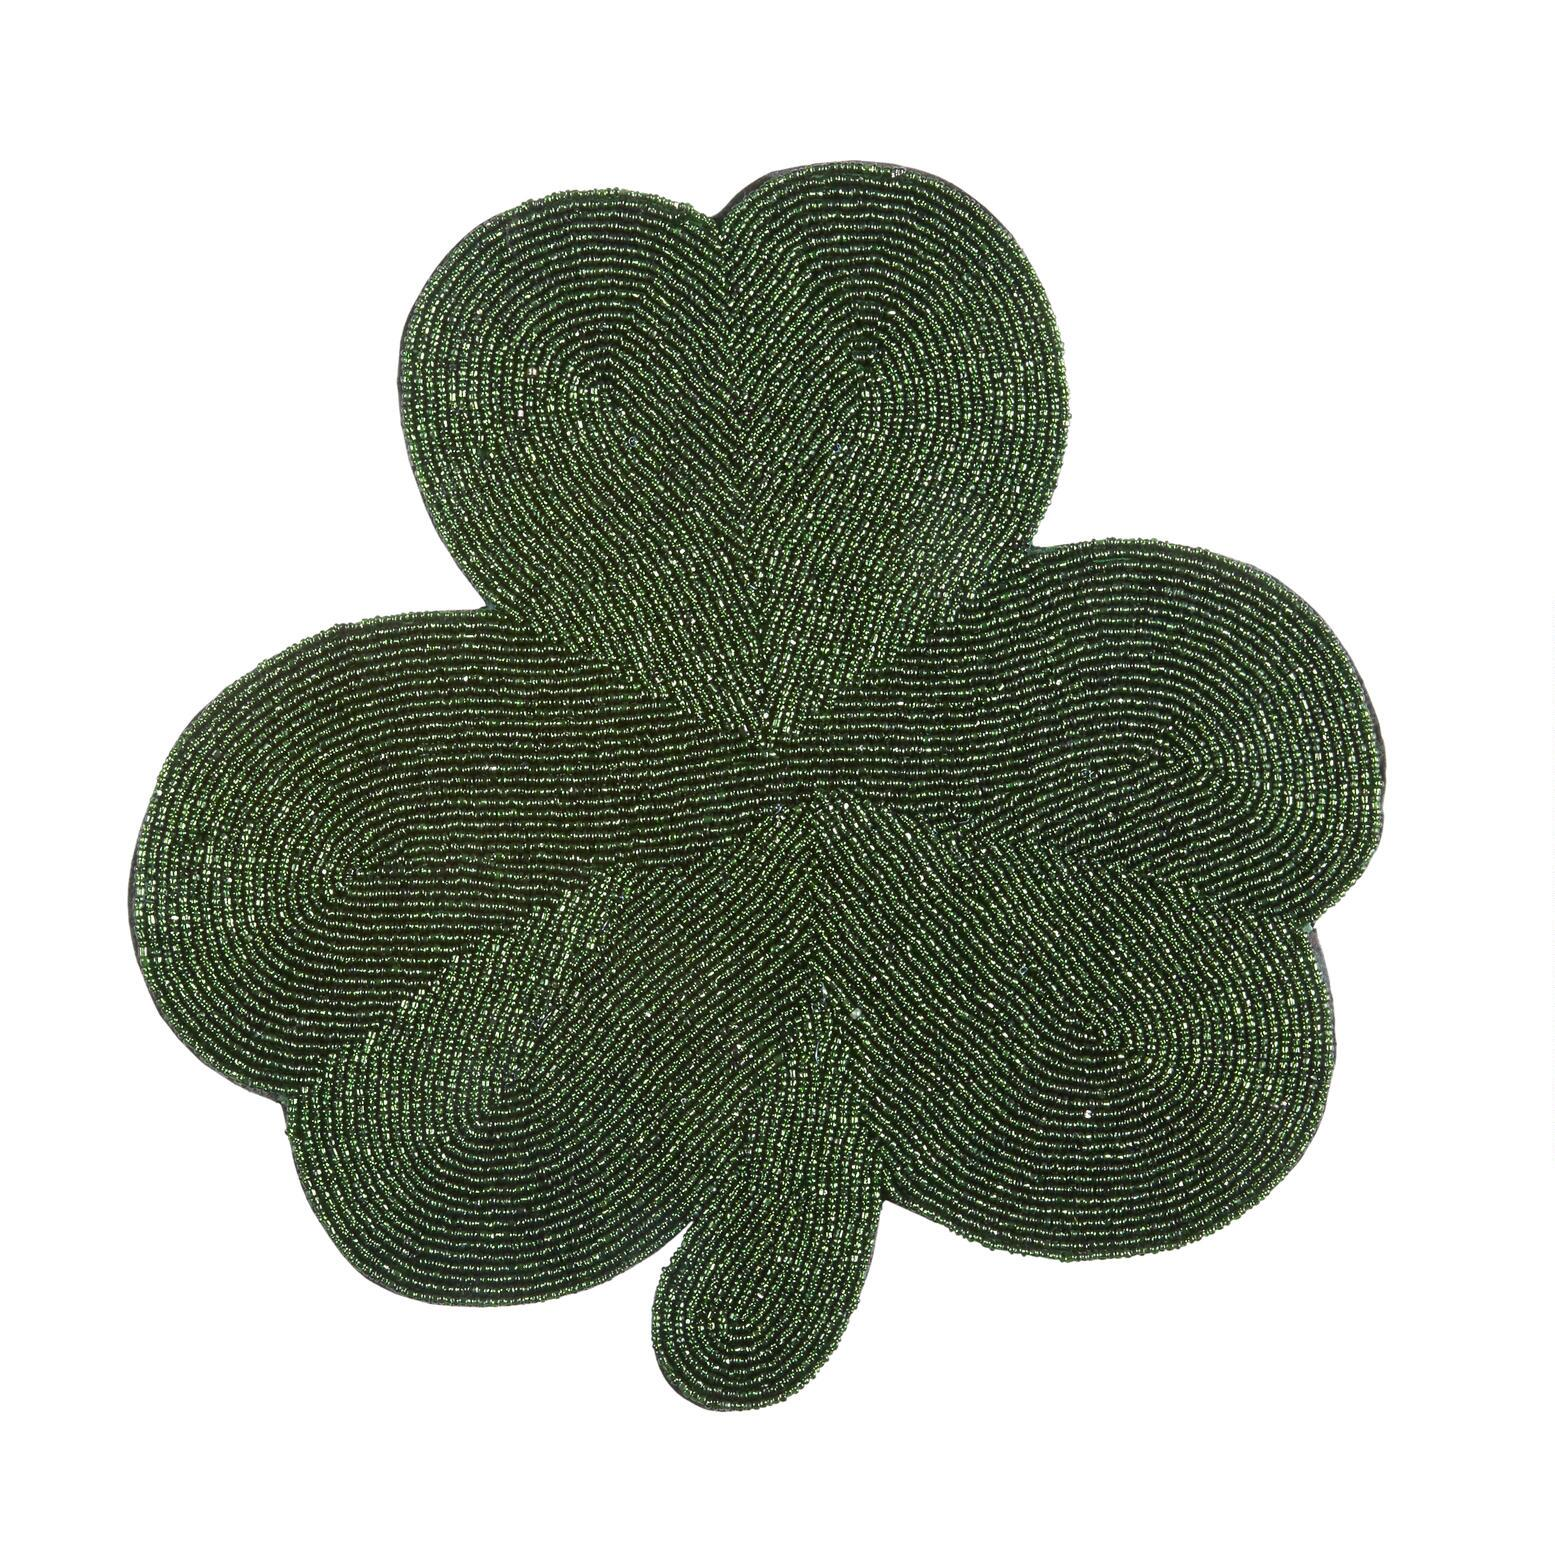 Patrick/'s Day Placemats 4 or 6 Irish Reversible Placemats Clover Placemats Shamrock Placemats Green St Patricks Day table decor Green St